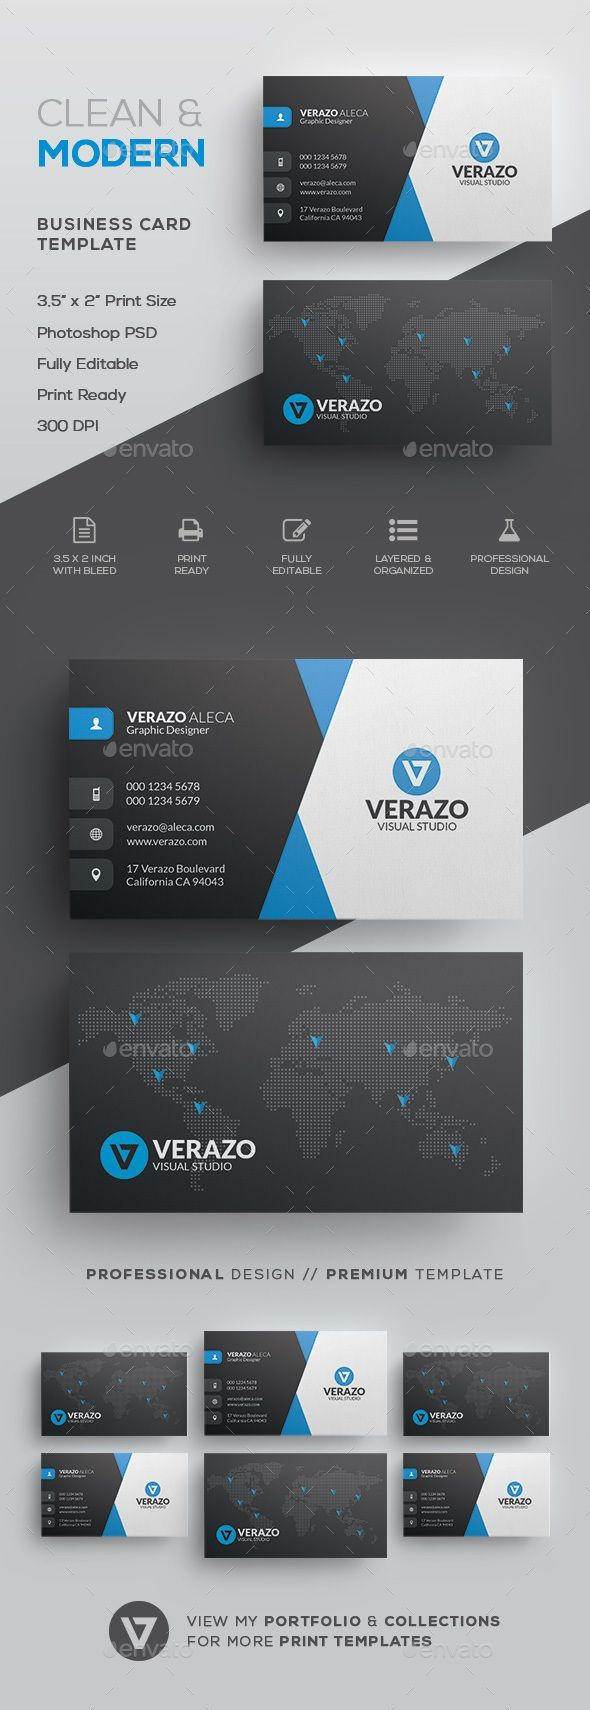 Templates business card template word online also business card templates business card template word online also business card design online free psd download in conjunction with avery business card template reheart Images